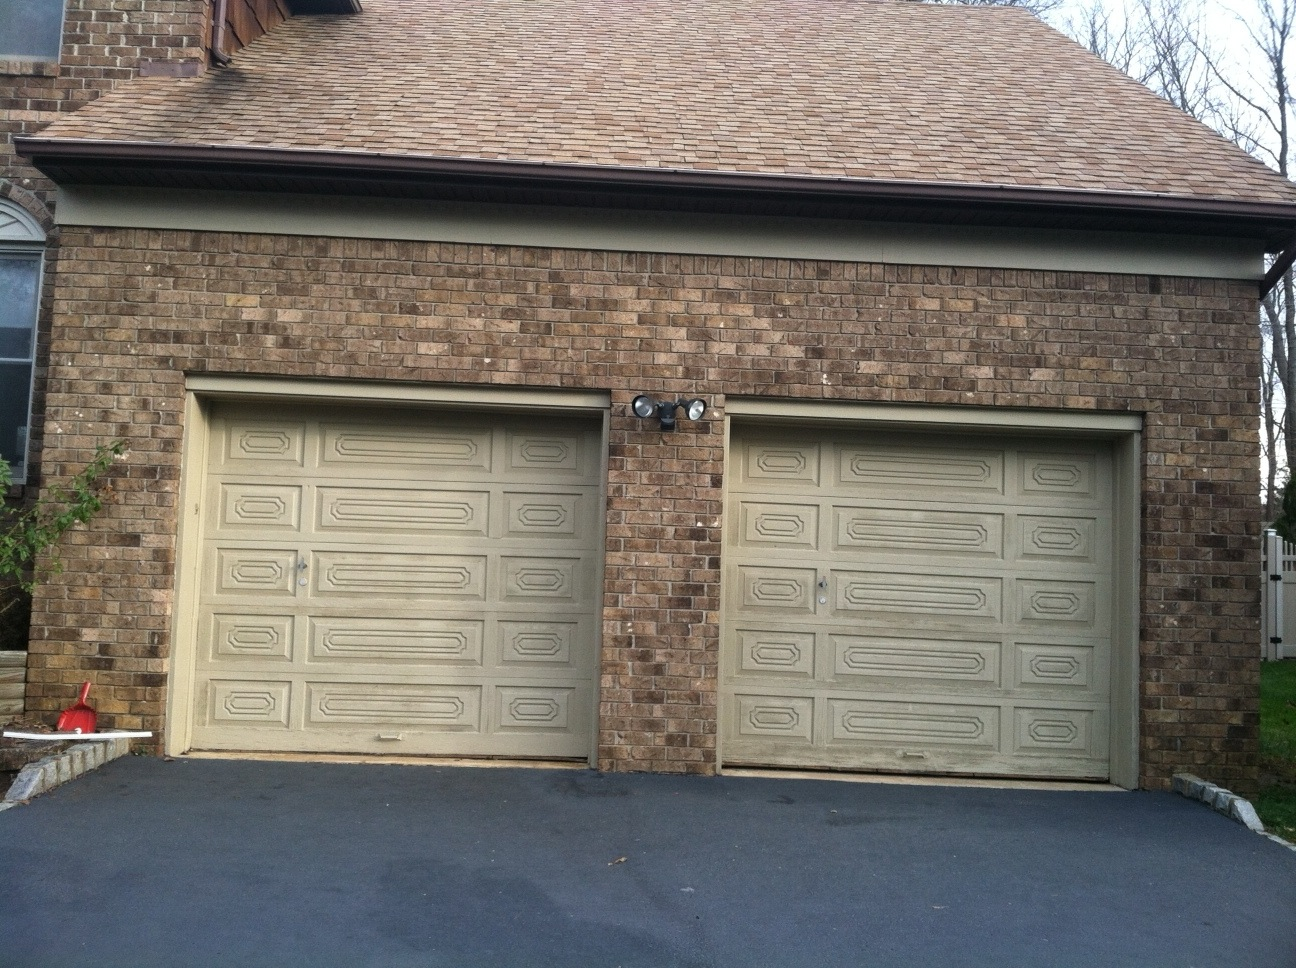 Door master nj increase curb appeal with a new garage door Curb appeal doors